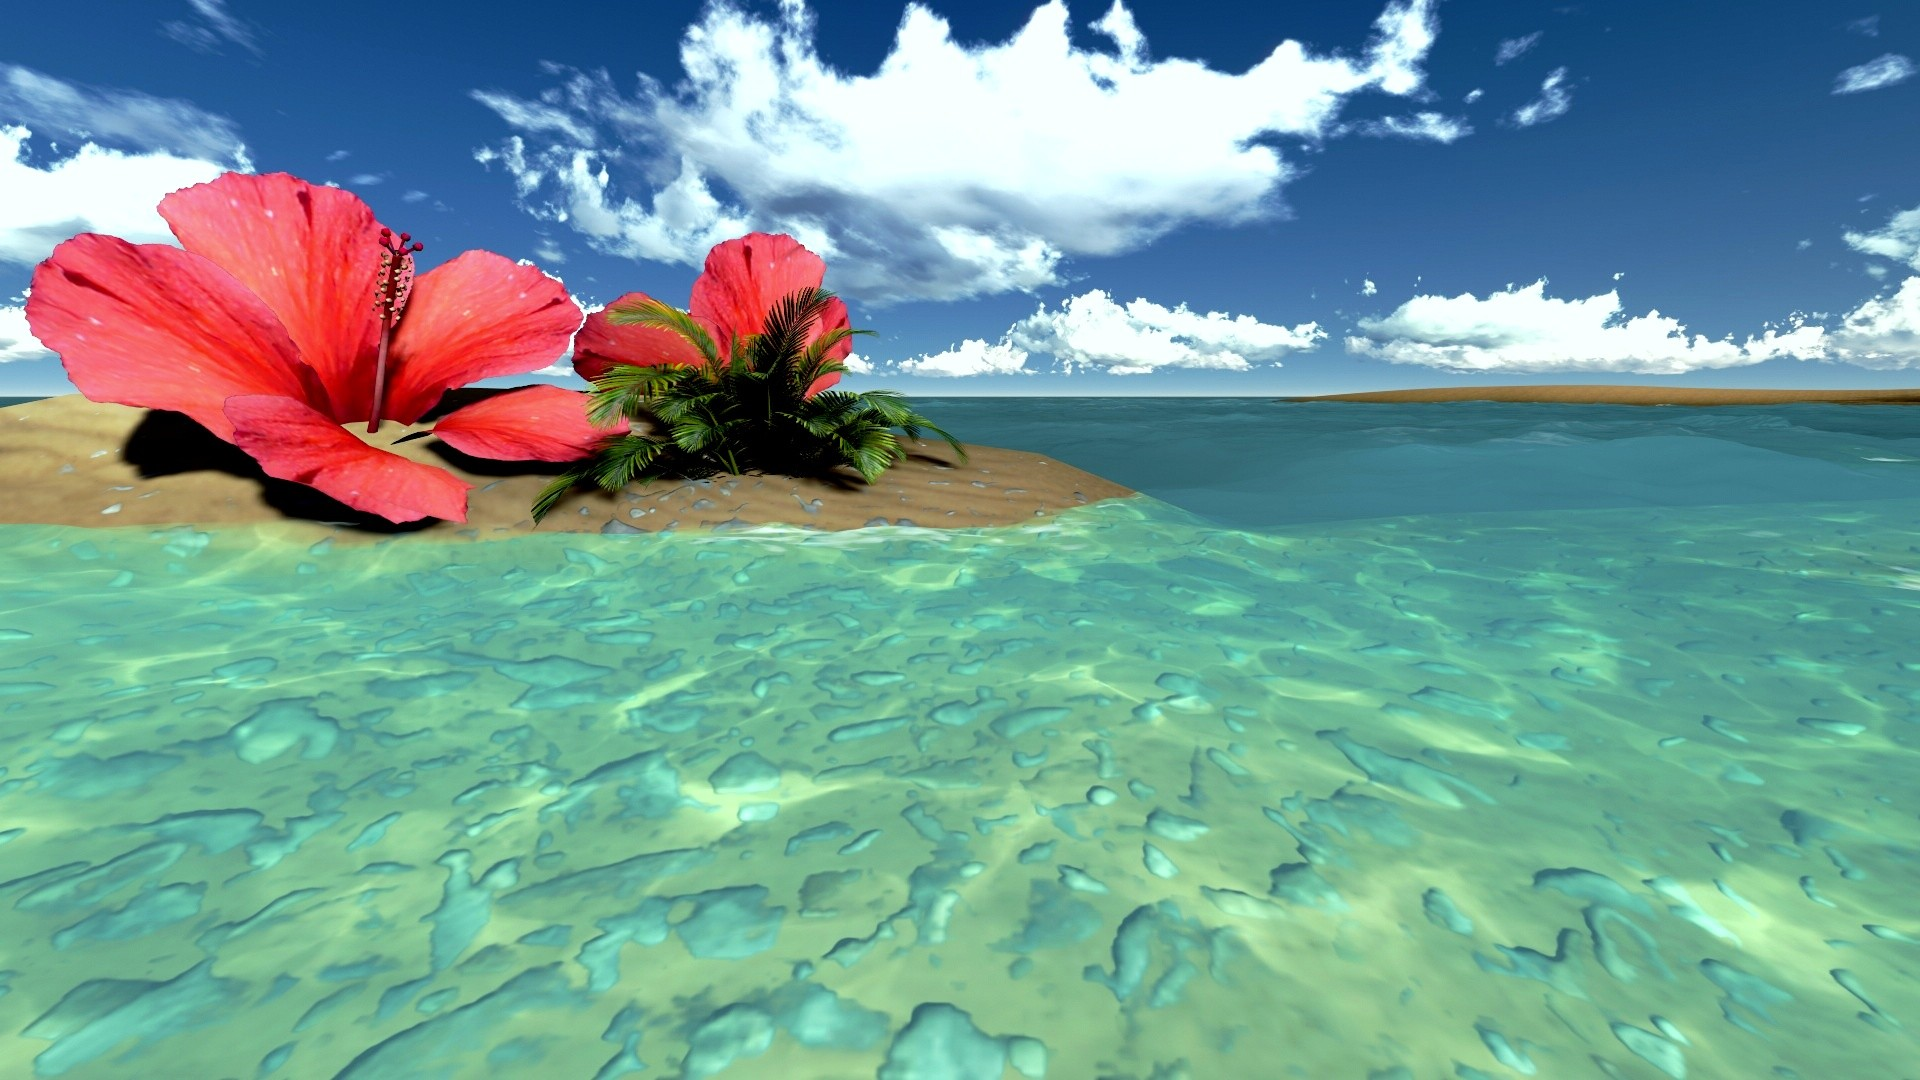 Hd Tropical Island Beach Paradise Wallpapers And Backgrounds: Tropical Wallpaper Desktop ·① WallpaperTag